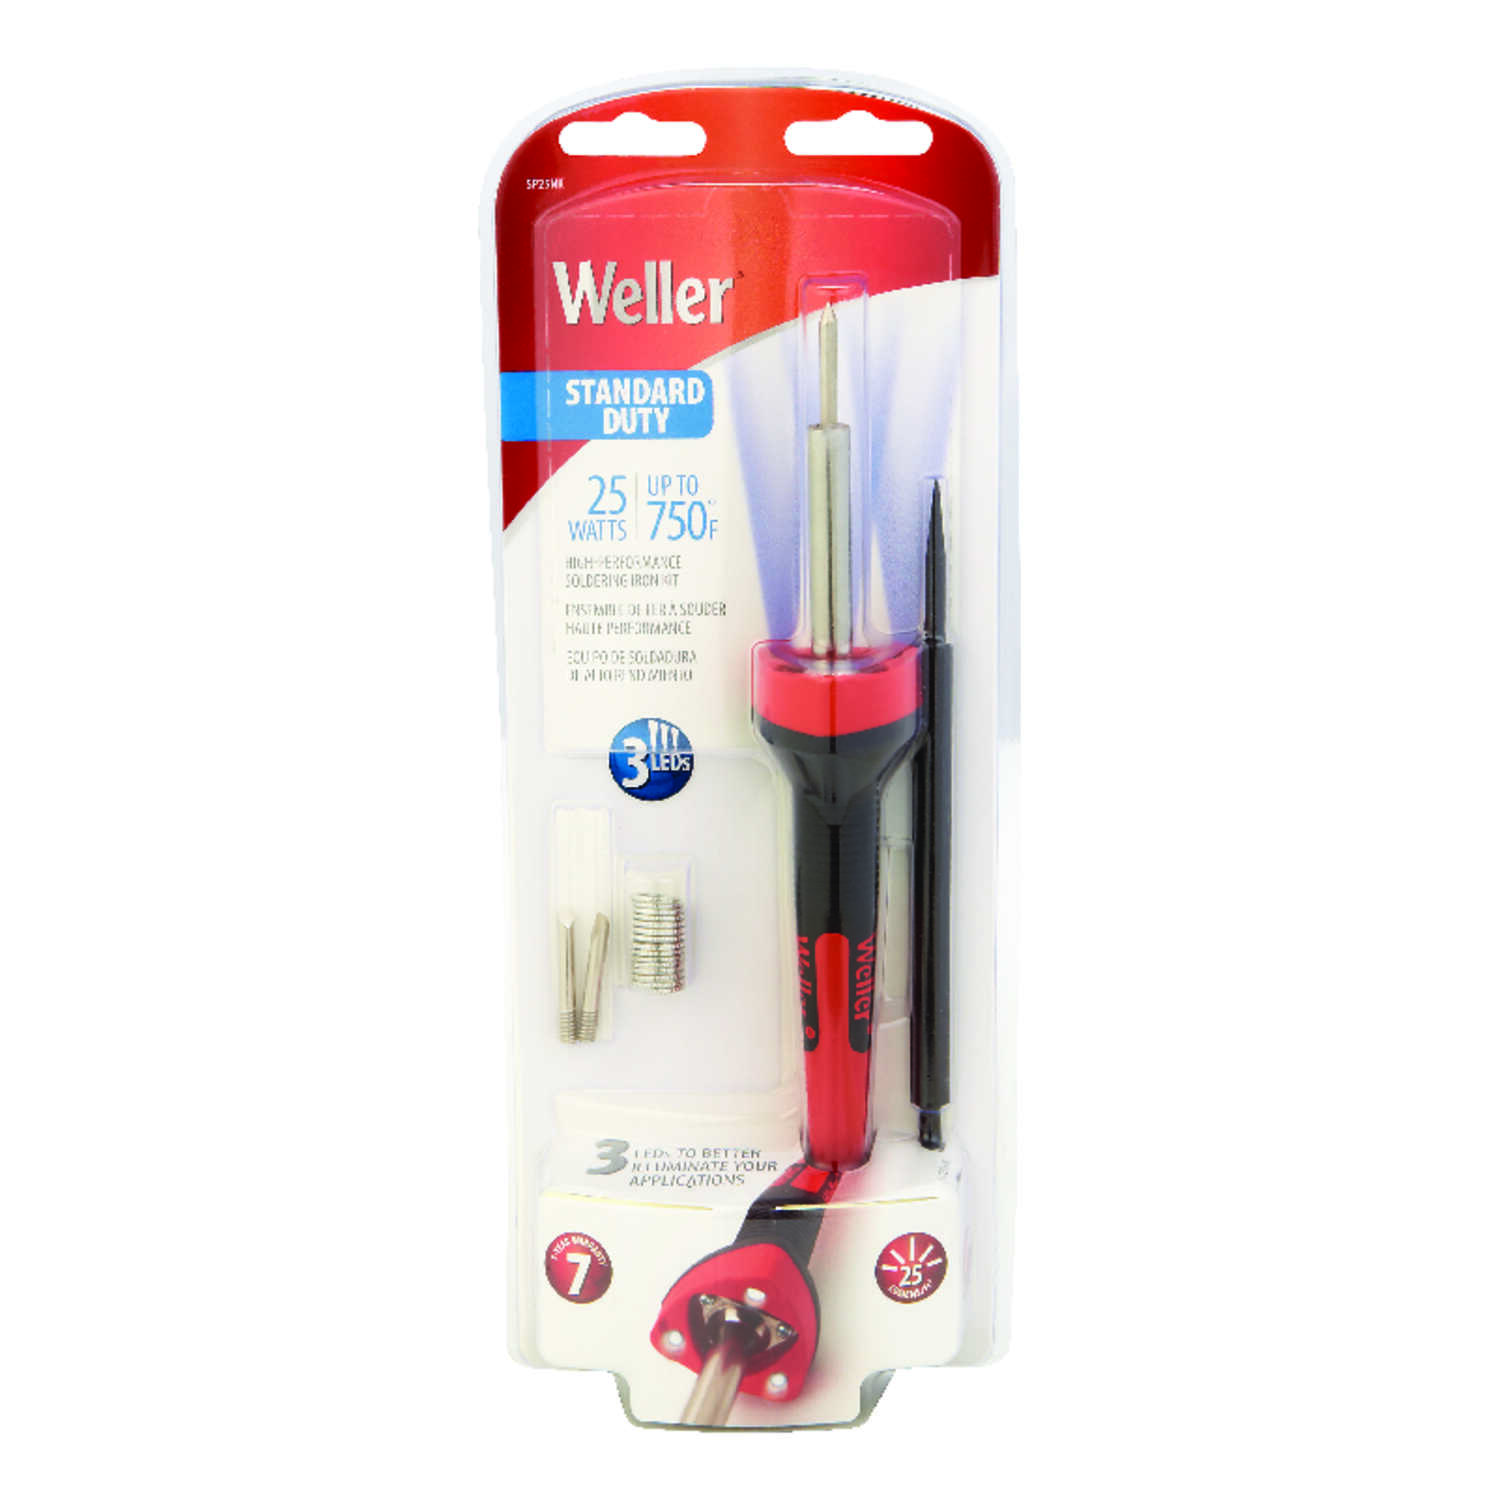 Weller  Cooper Tools  12.15 in. Corded  Soldering Gun Kit  25 watts Orange  1